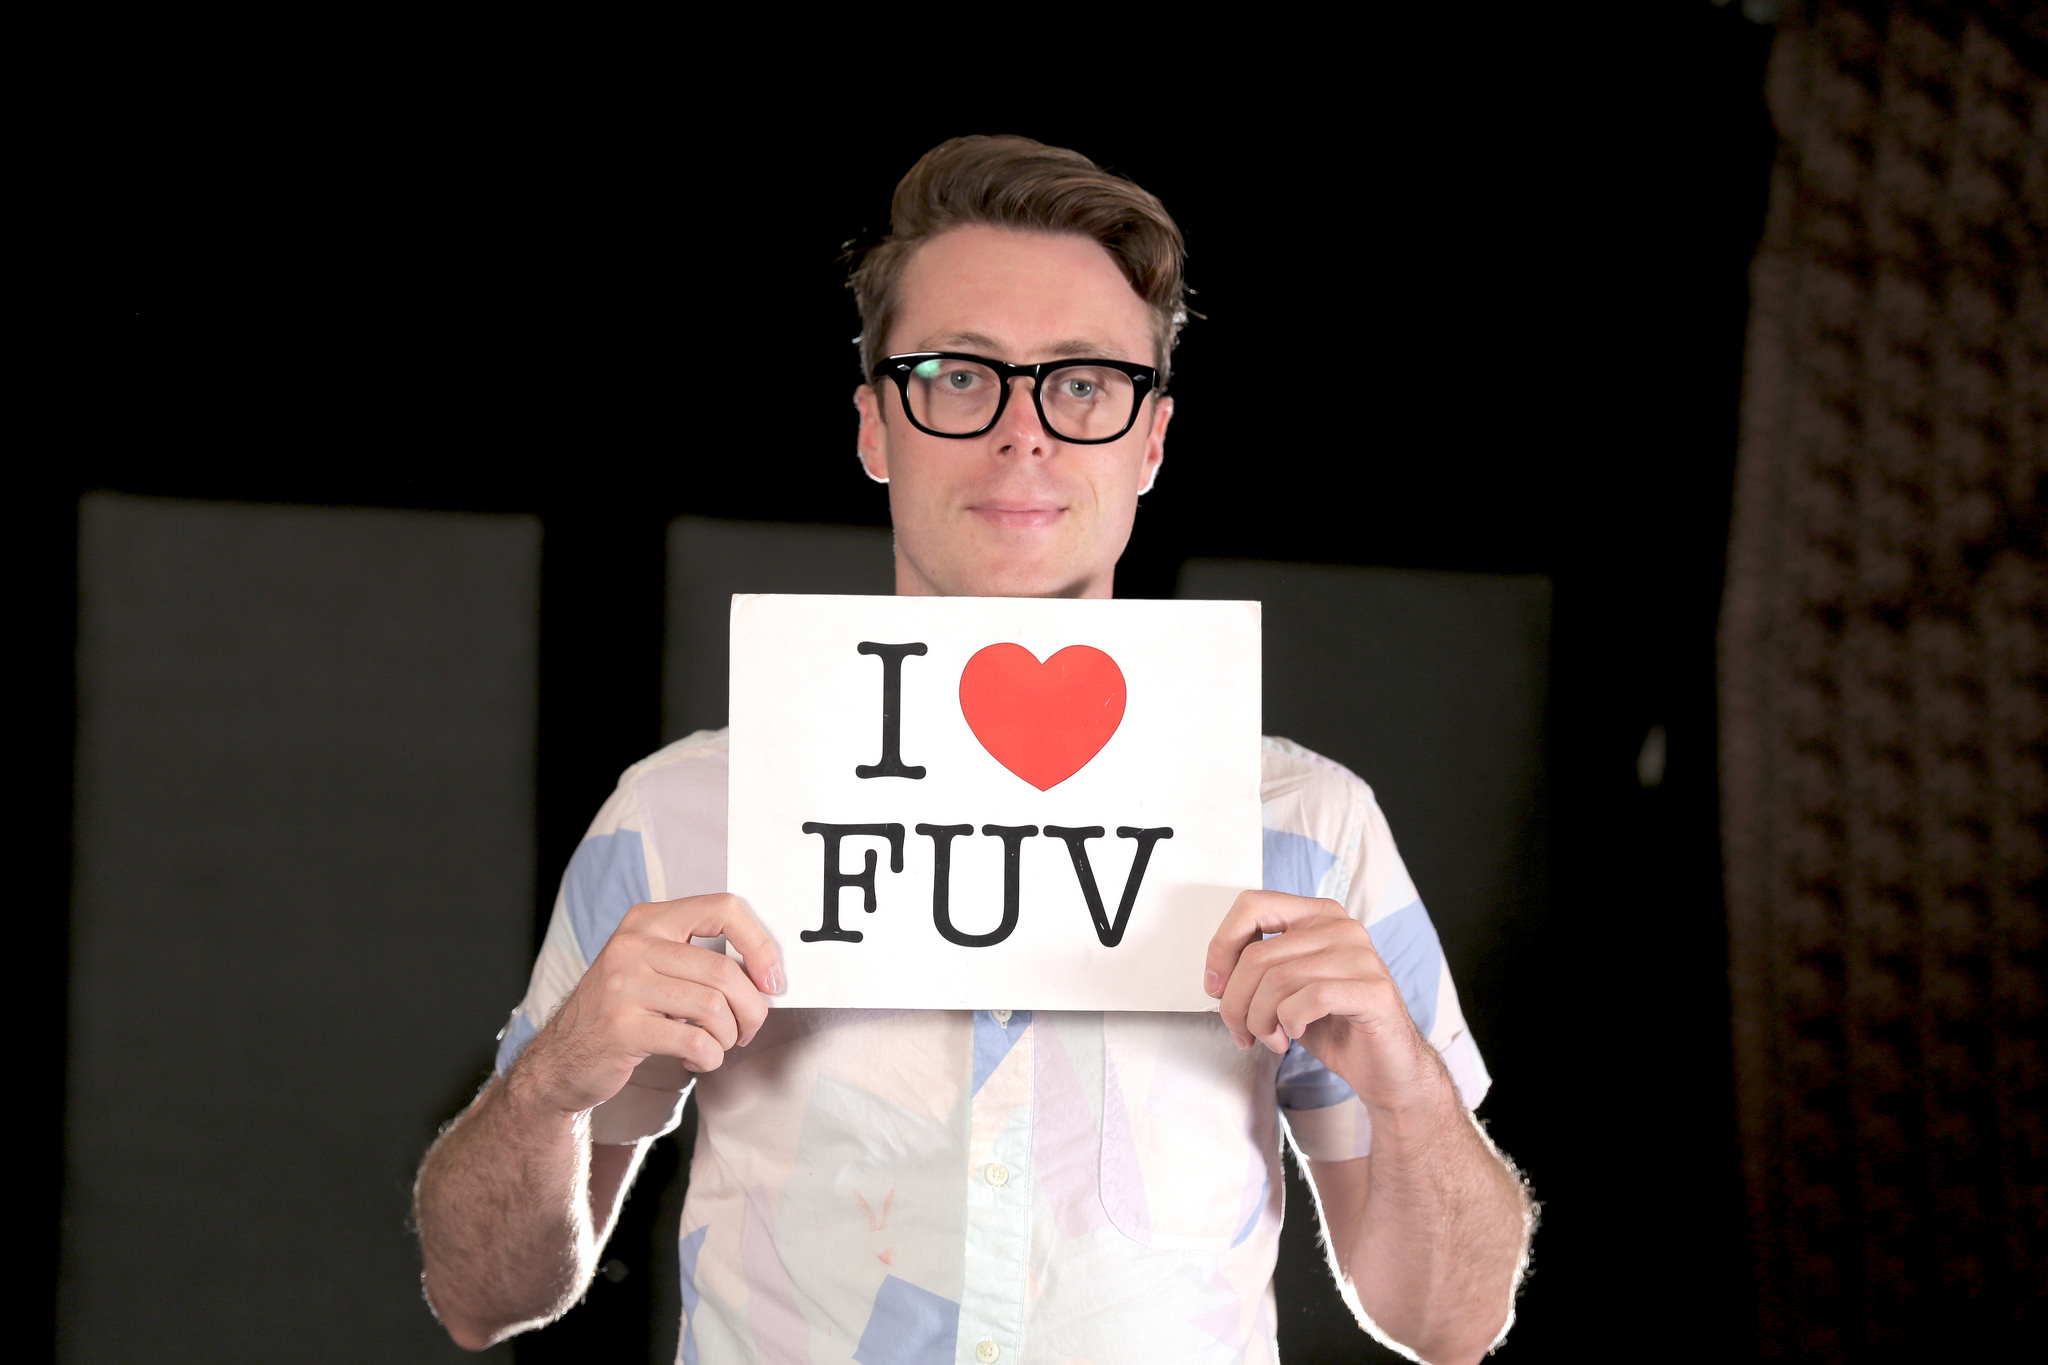 Hear an FUV Live session with Jeremy Messersmith tonight at 9.